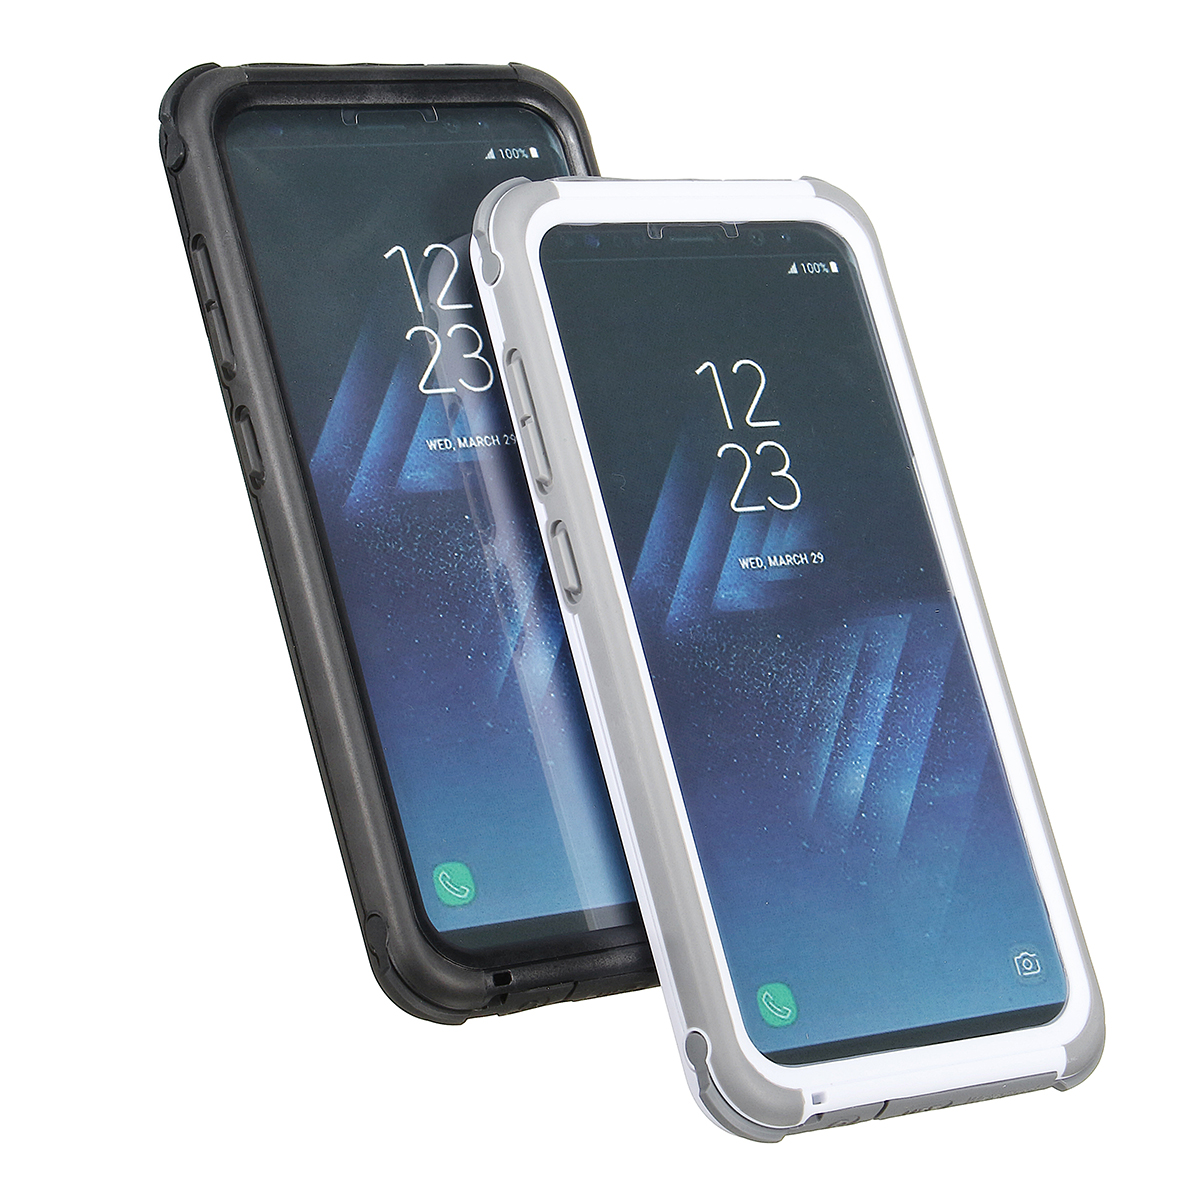 Image of 2 In 1 wasserdichtes schneesicheres staubdichtes Shockproof PC PET TPU Fall für Samsung Galaxy S8 Plus 6.2 ''